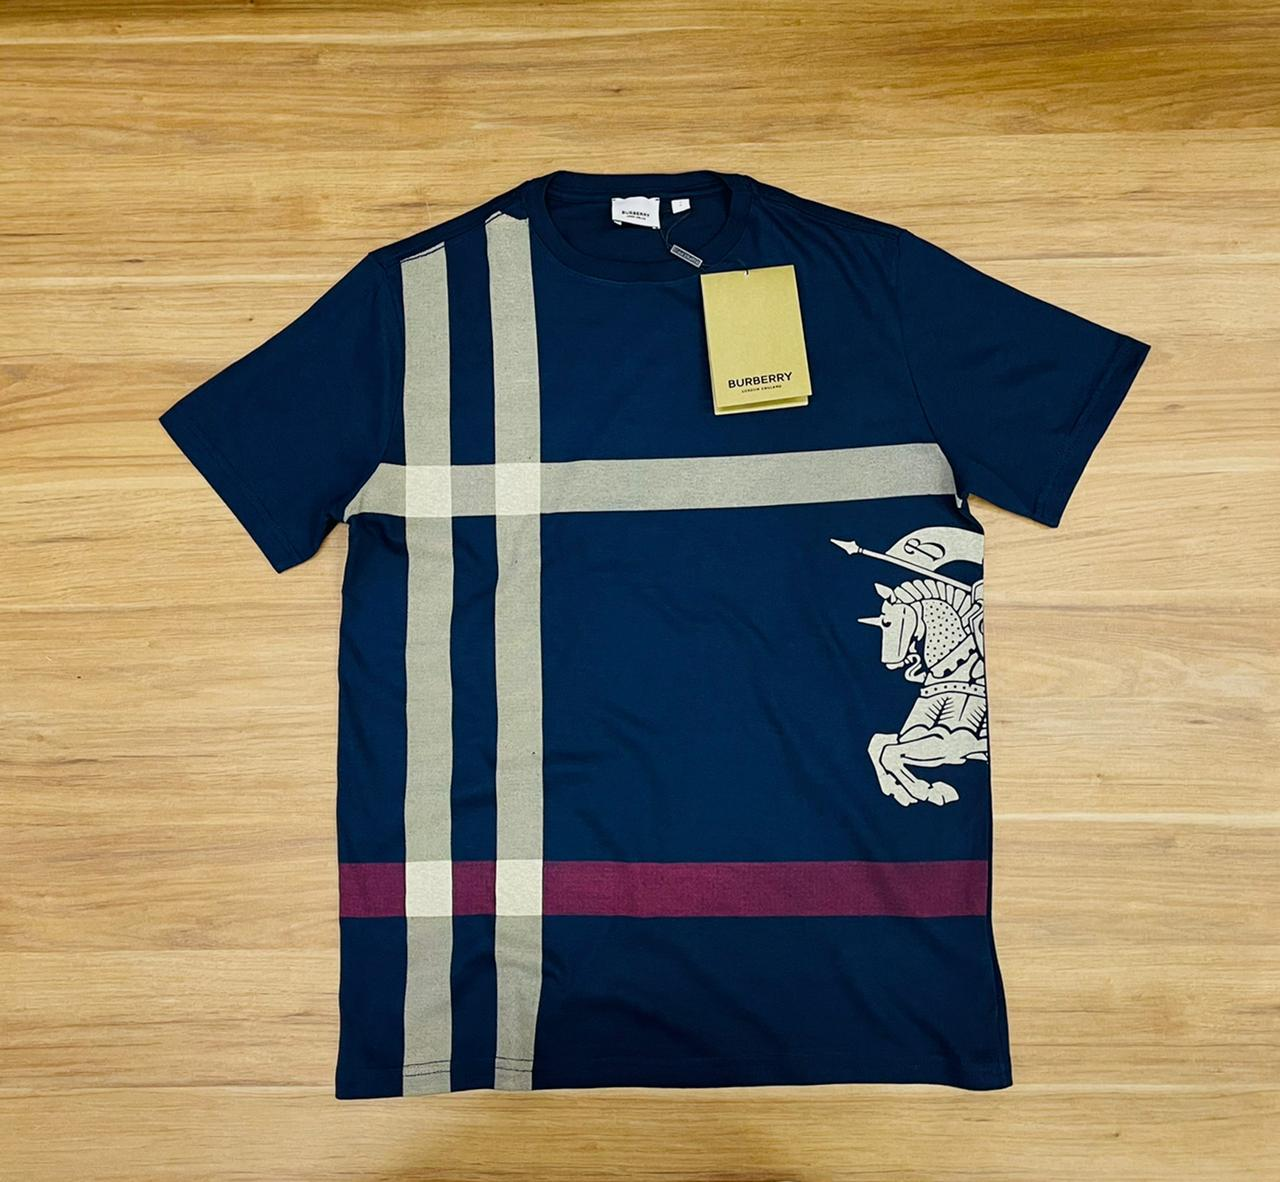 Camiseta Burberry (cada)